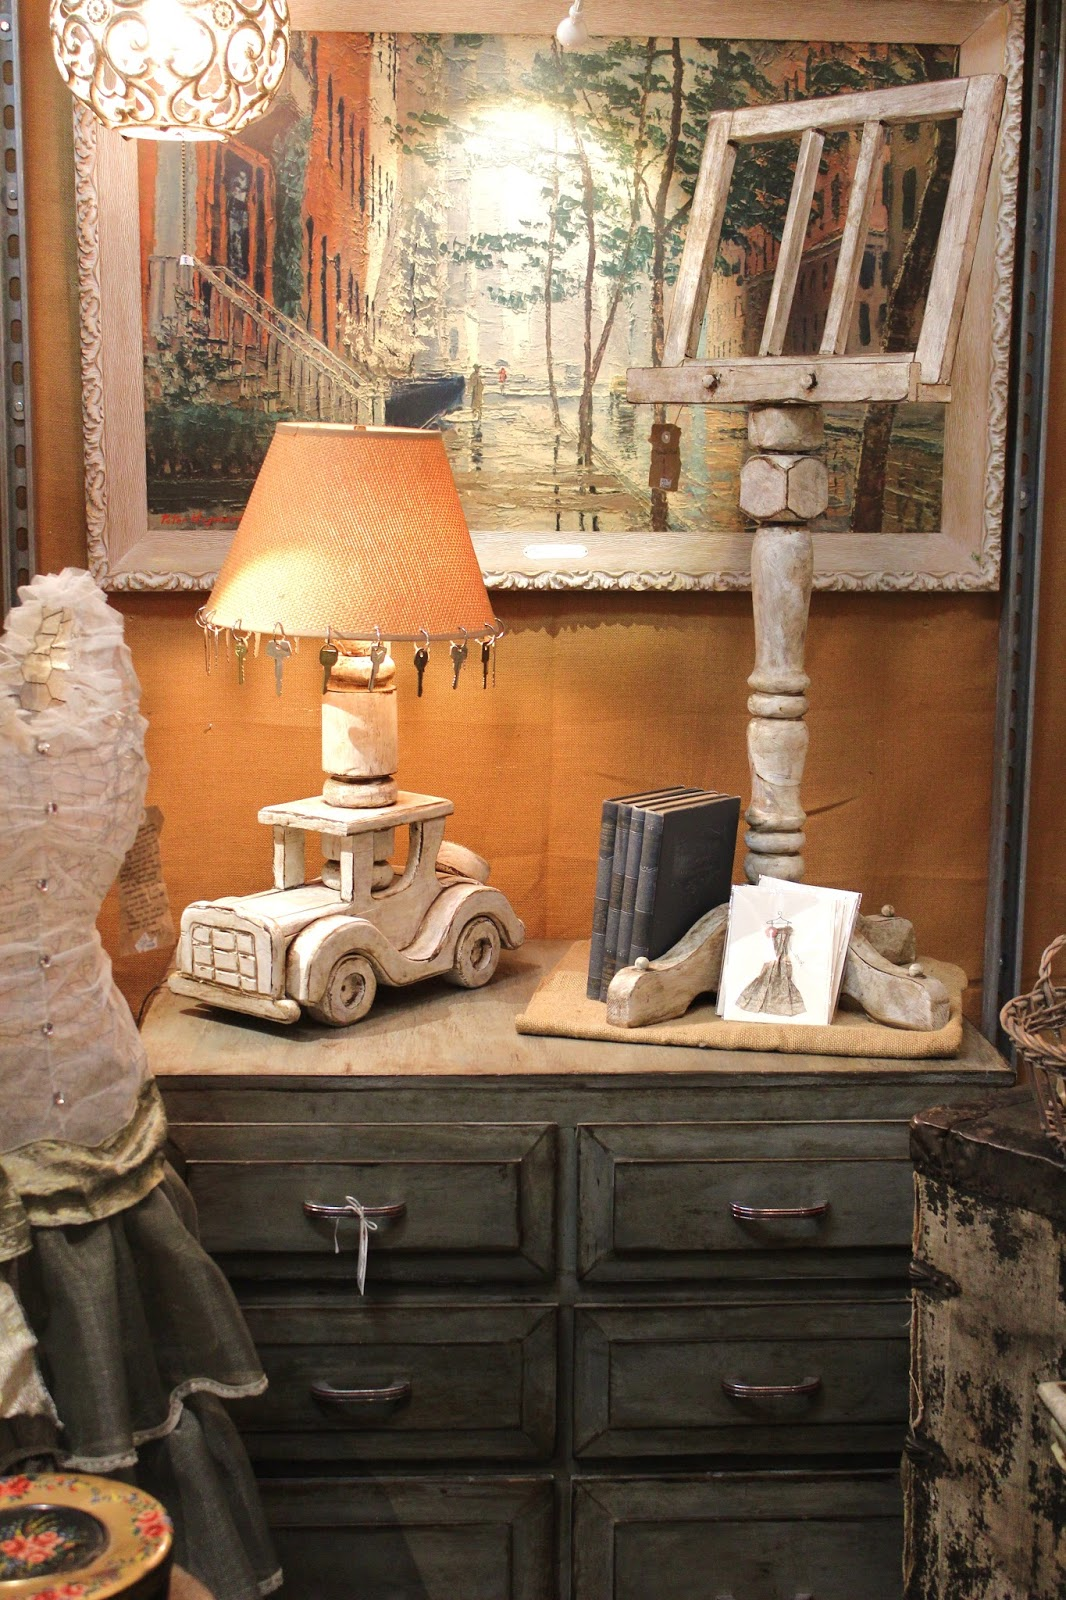 Antique Home Decor in Portland - Antique Home Decor, Portland - Monticello Antique Market